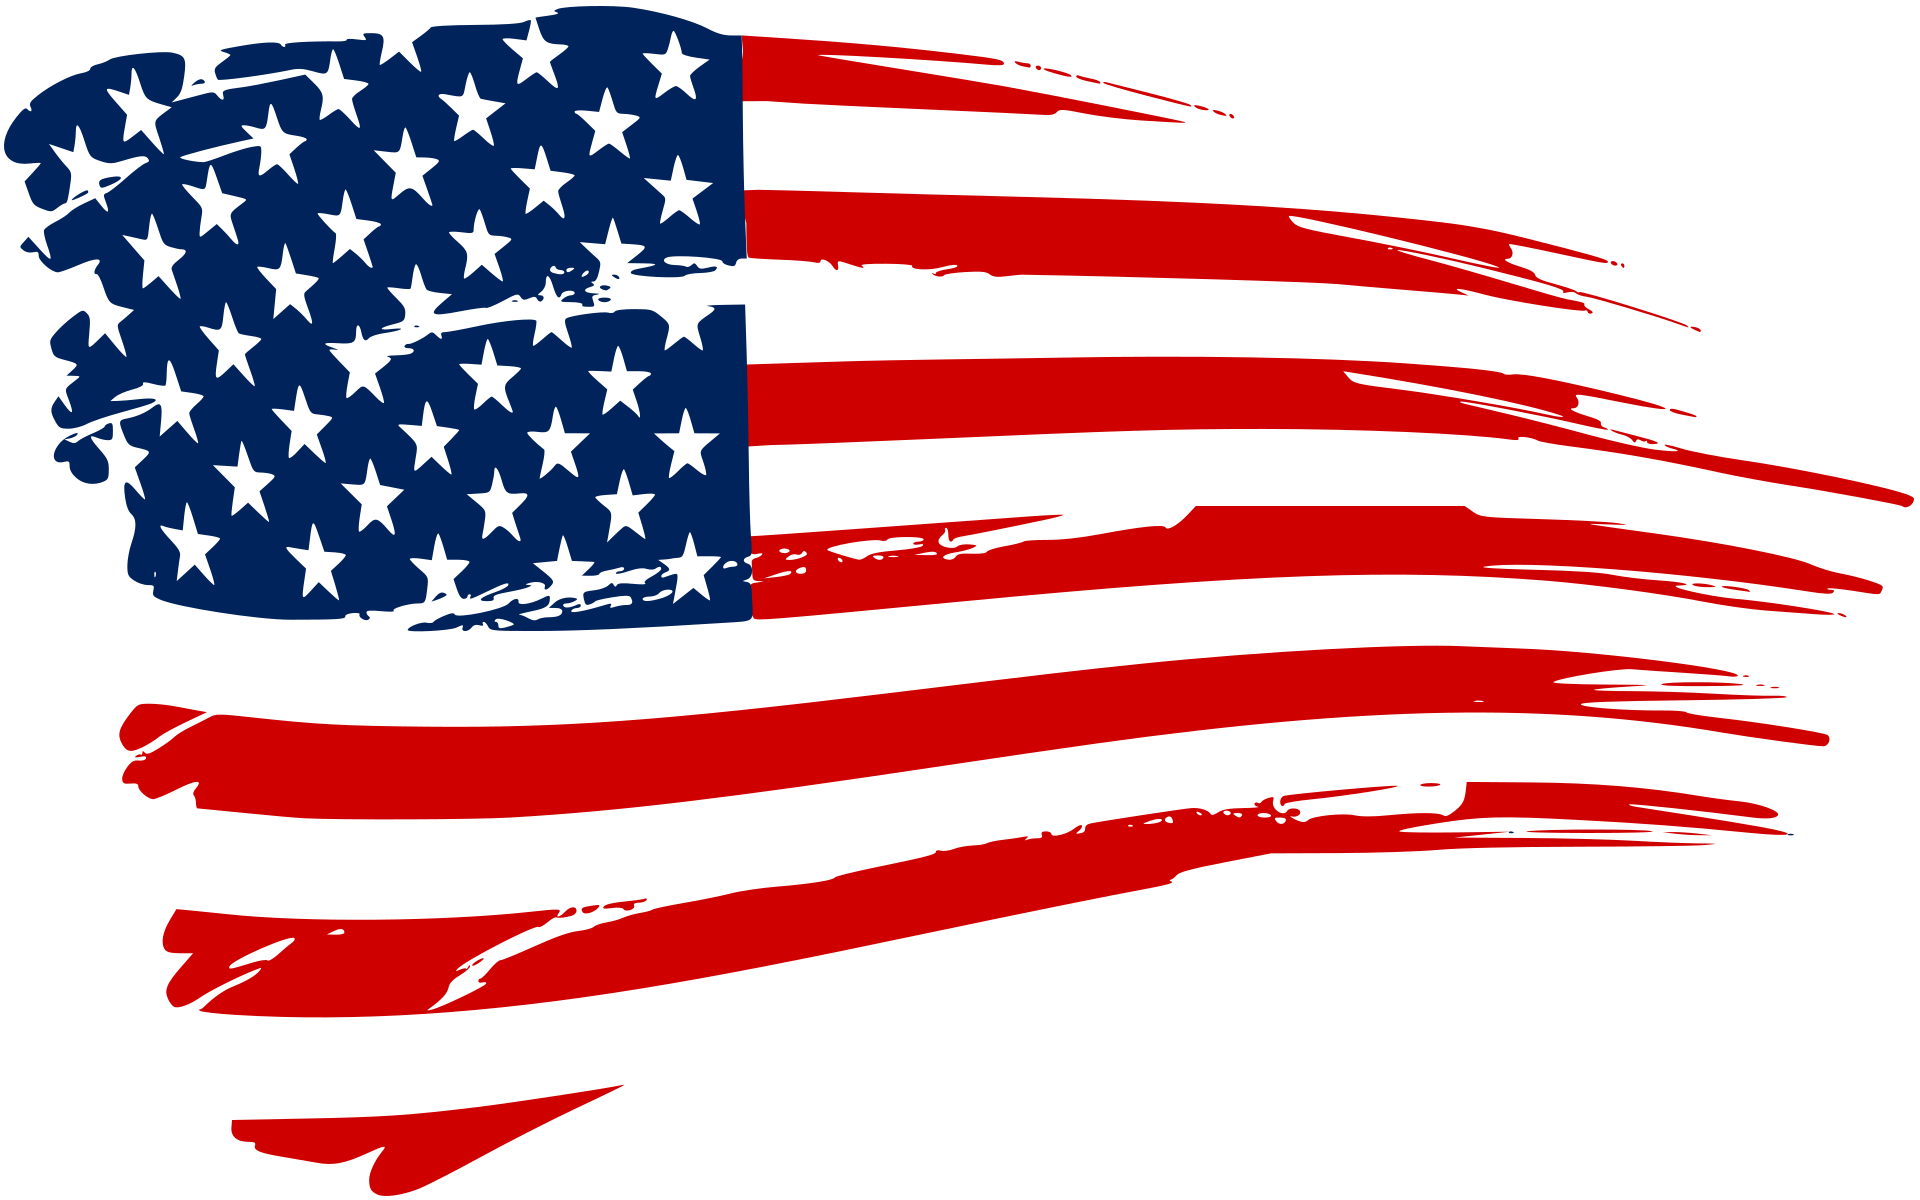 American Flag Png - American flag flaming - /scenic/wallpaper/patriotic/American_flag_flaming. png.html